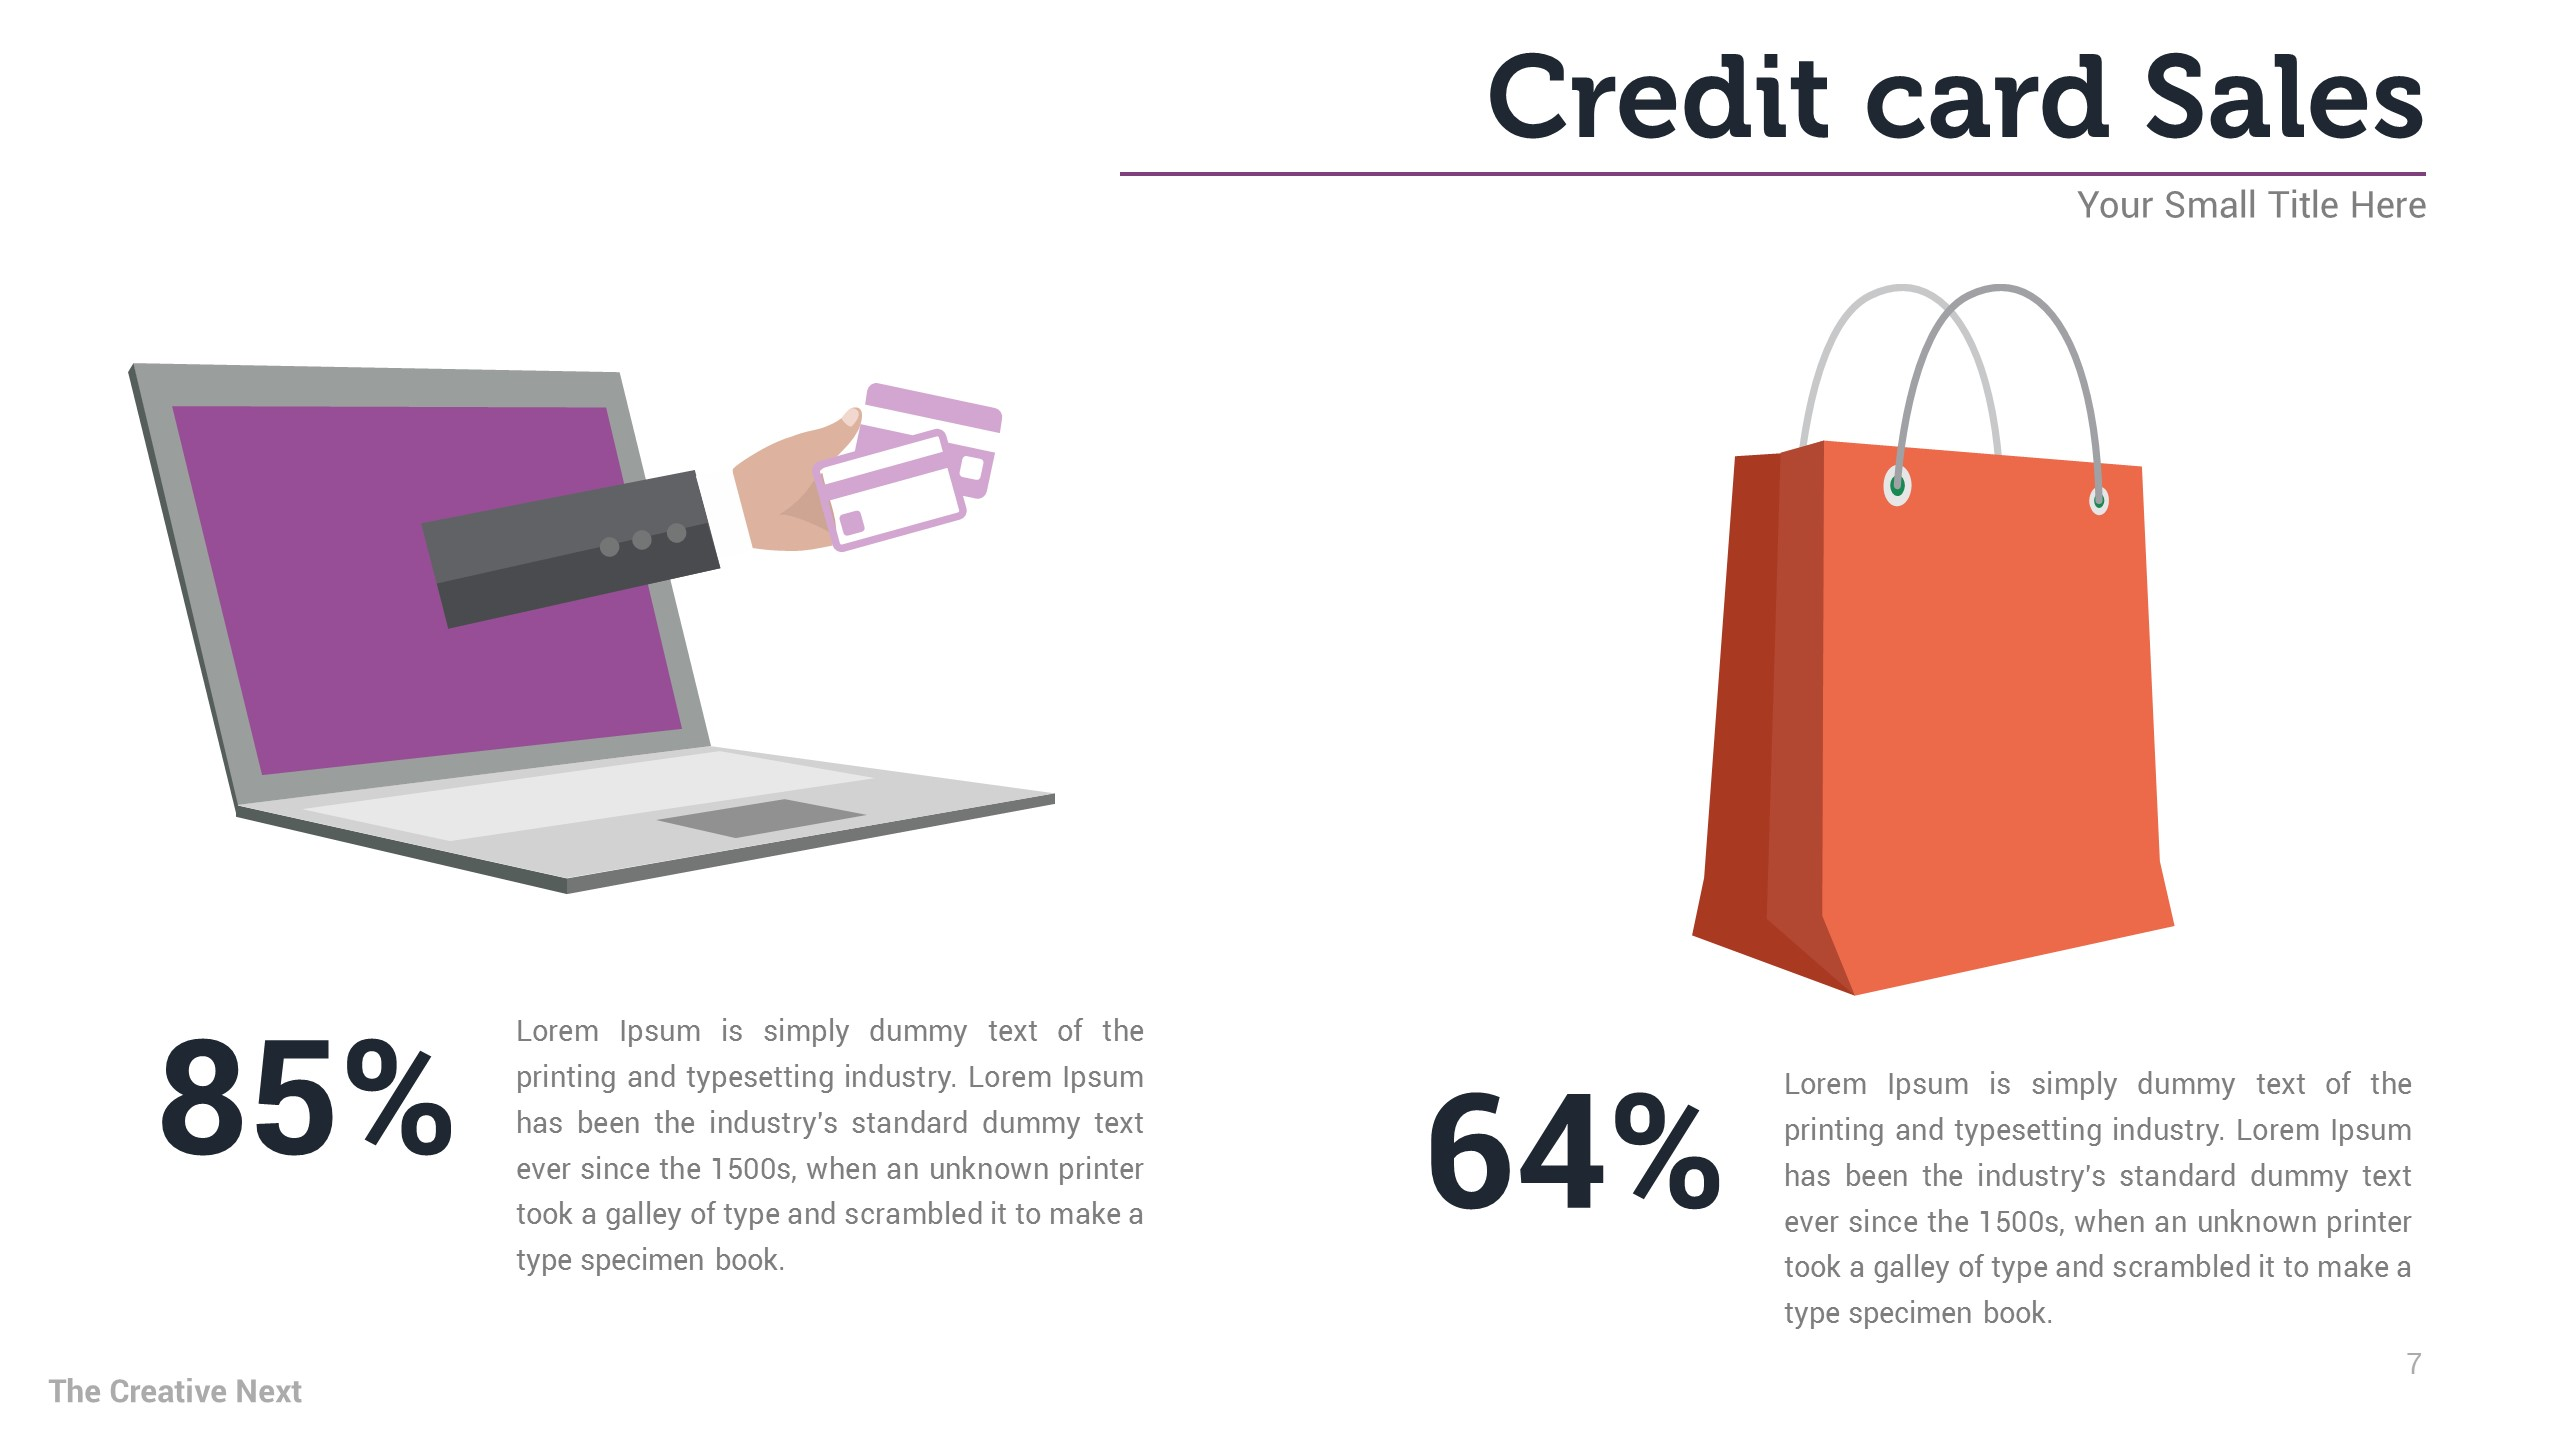 busiess credit card sales report